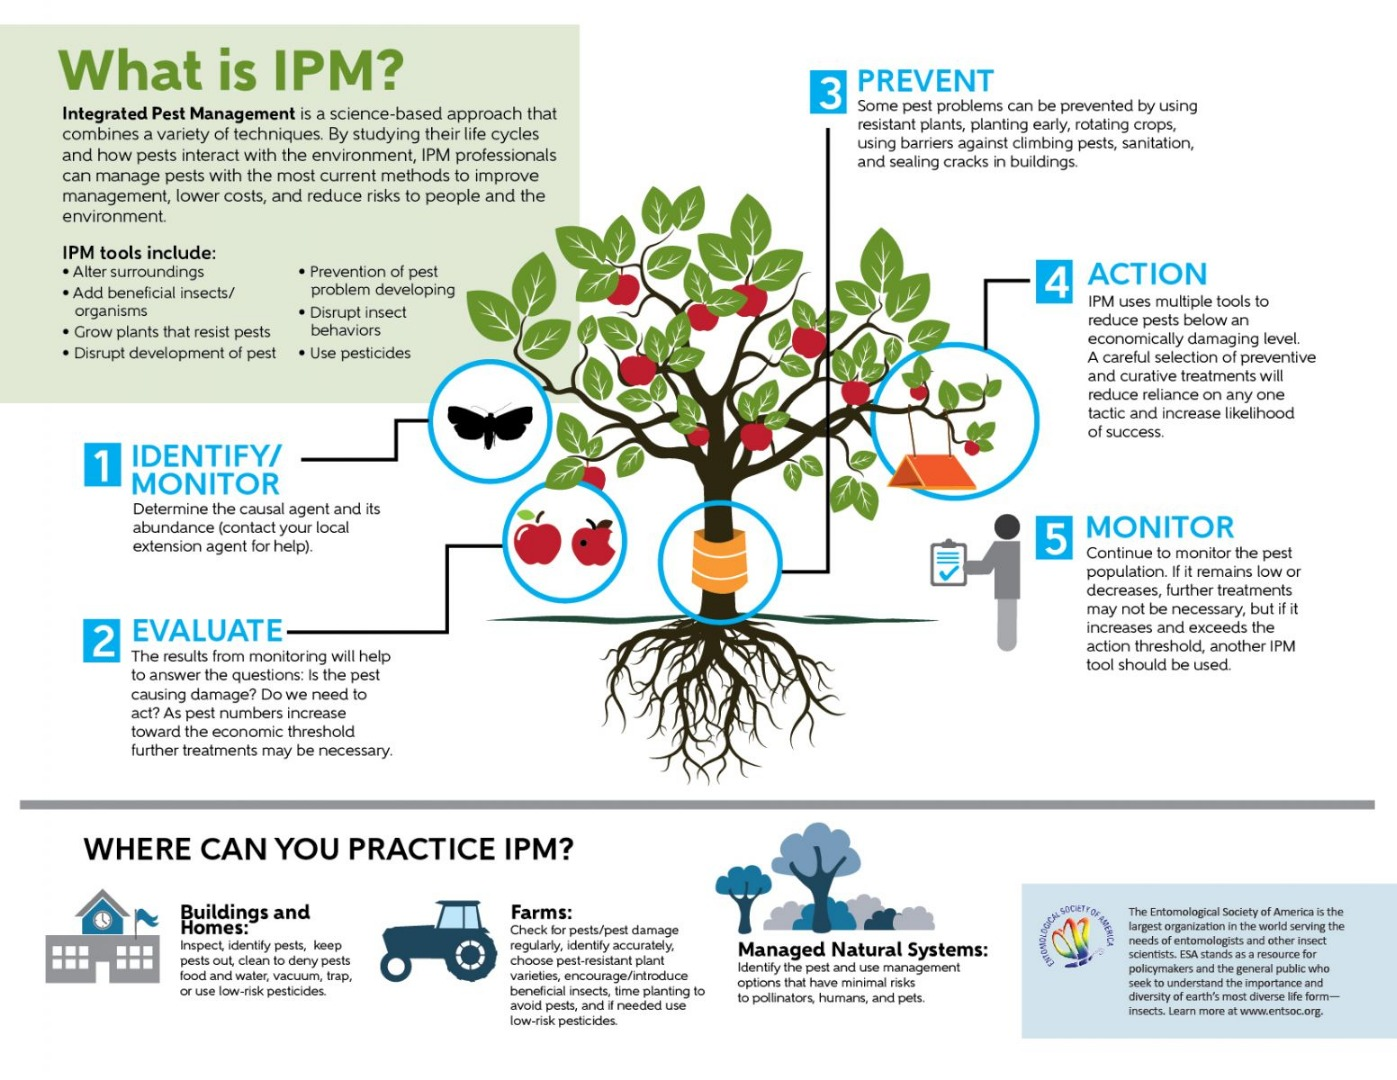 Infographic - What is IPM?